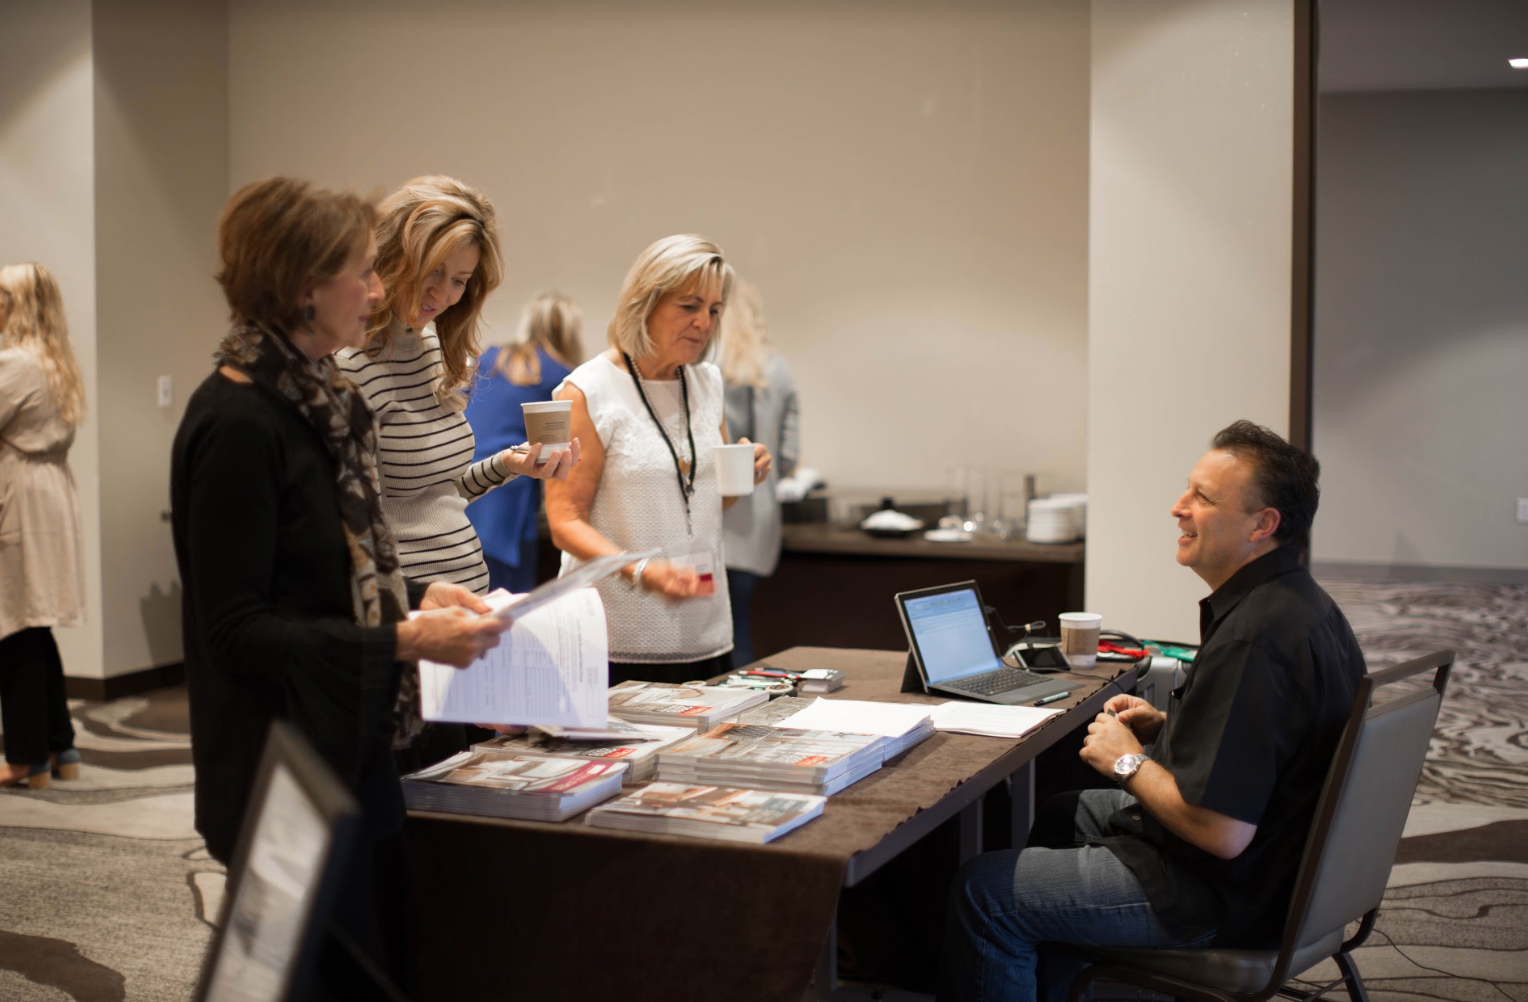 Become a Sponsor - Do you want your product to be seen by hundreds of Home Stagers across the country? Become a sponsor for our Home Staging Summit and gain more partners than ever!